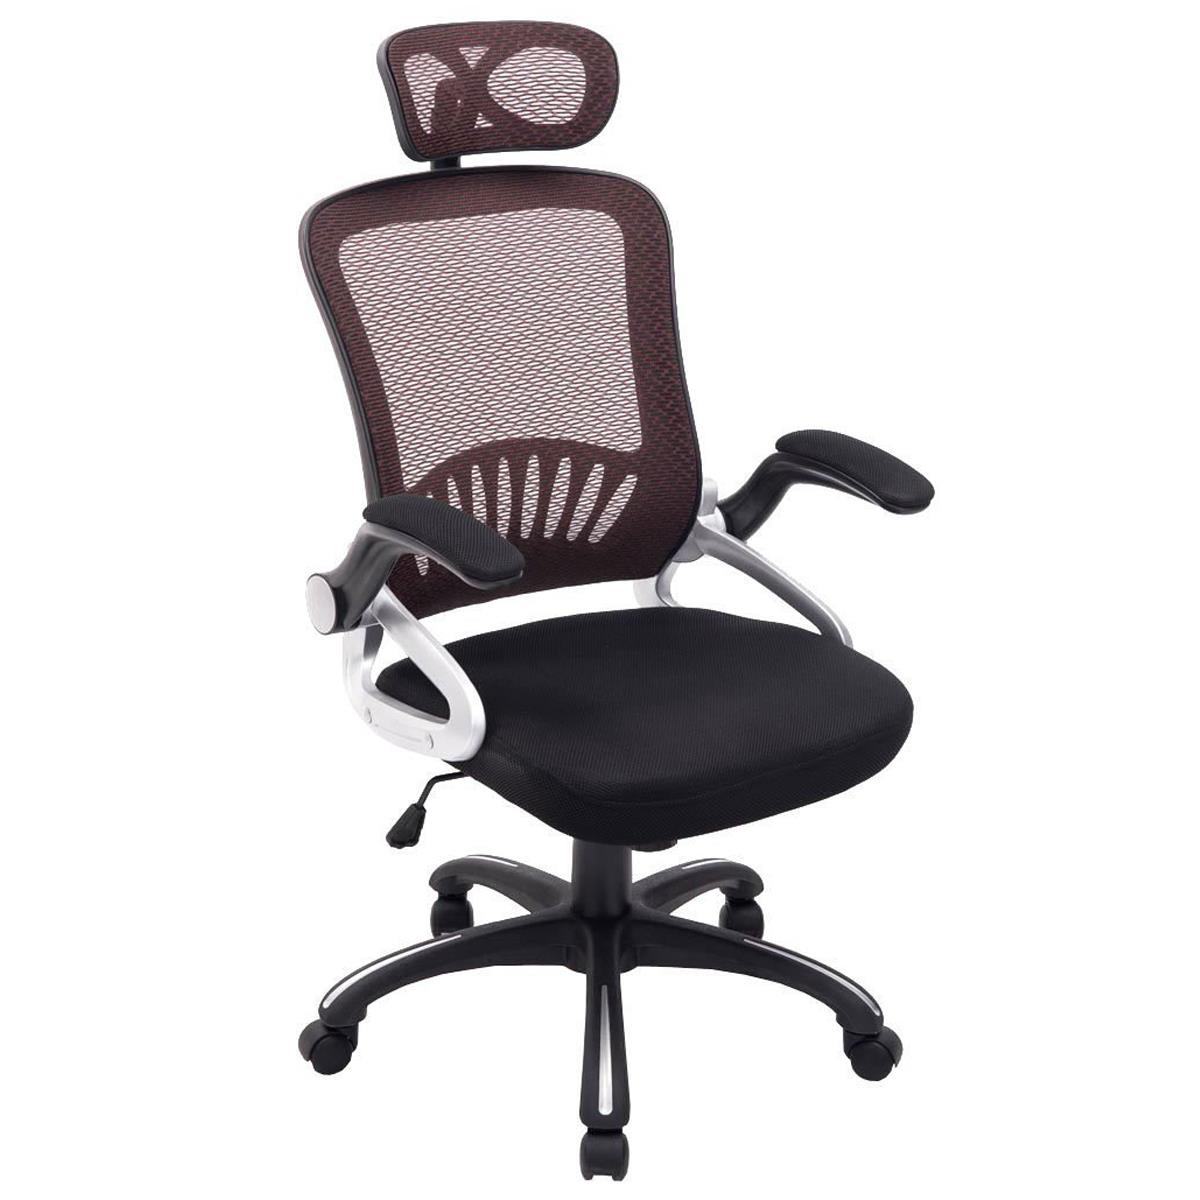 Silla Ergonómica SAMANA, Soporte Lumbar, Cabecero Regulable en Malla Transpirable color Marrón/Negro